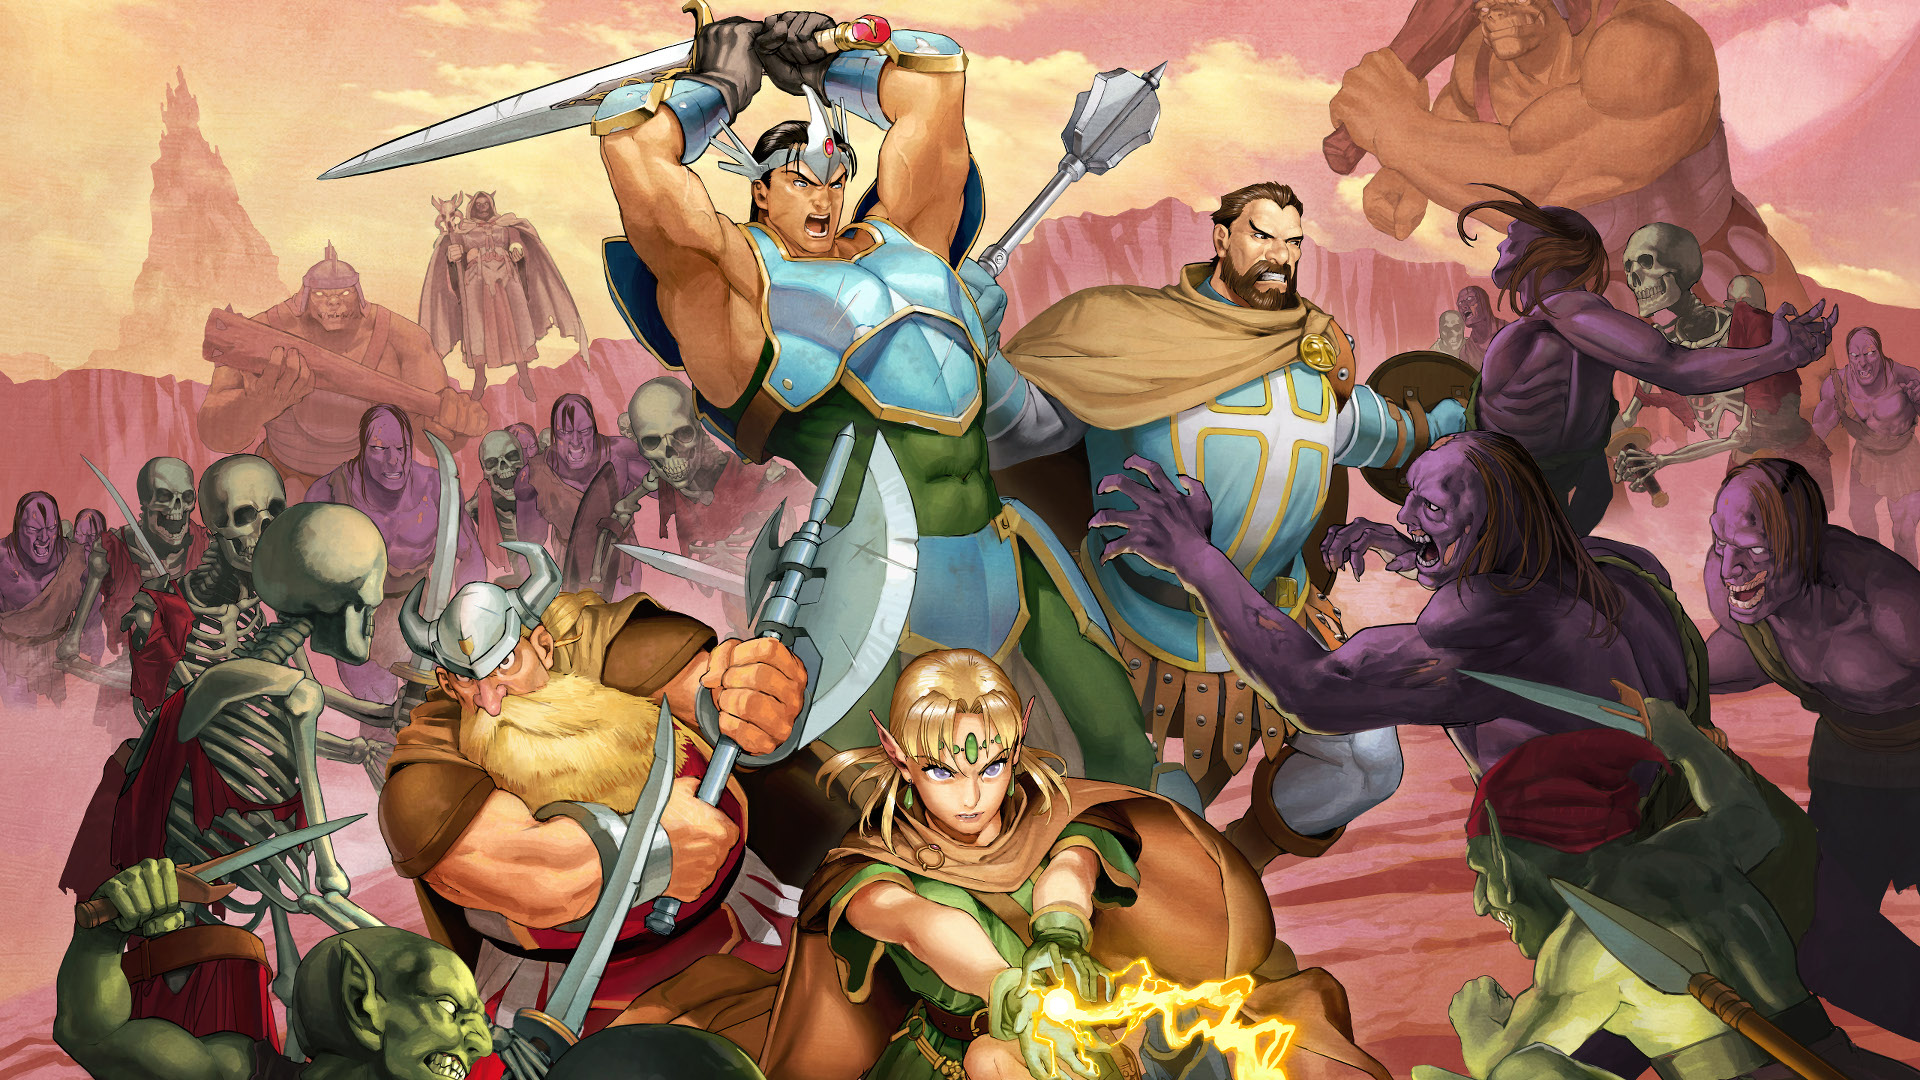 Dungeons And Dragons Chronicles of Mystara Wallpaper 1920x1080 1920x1080